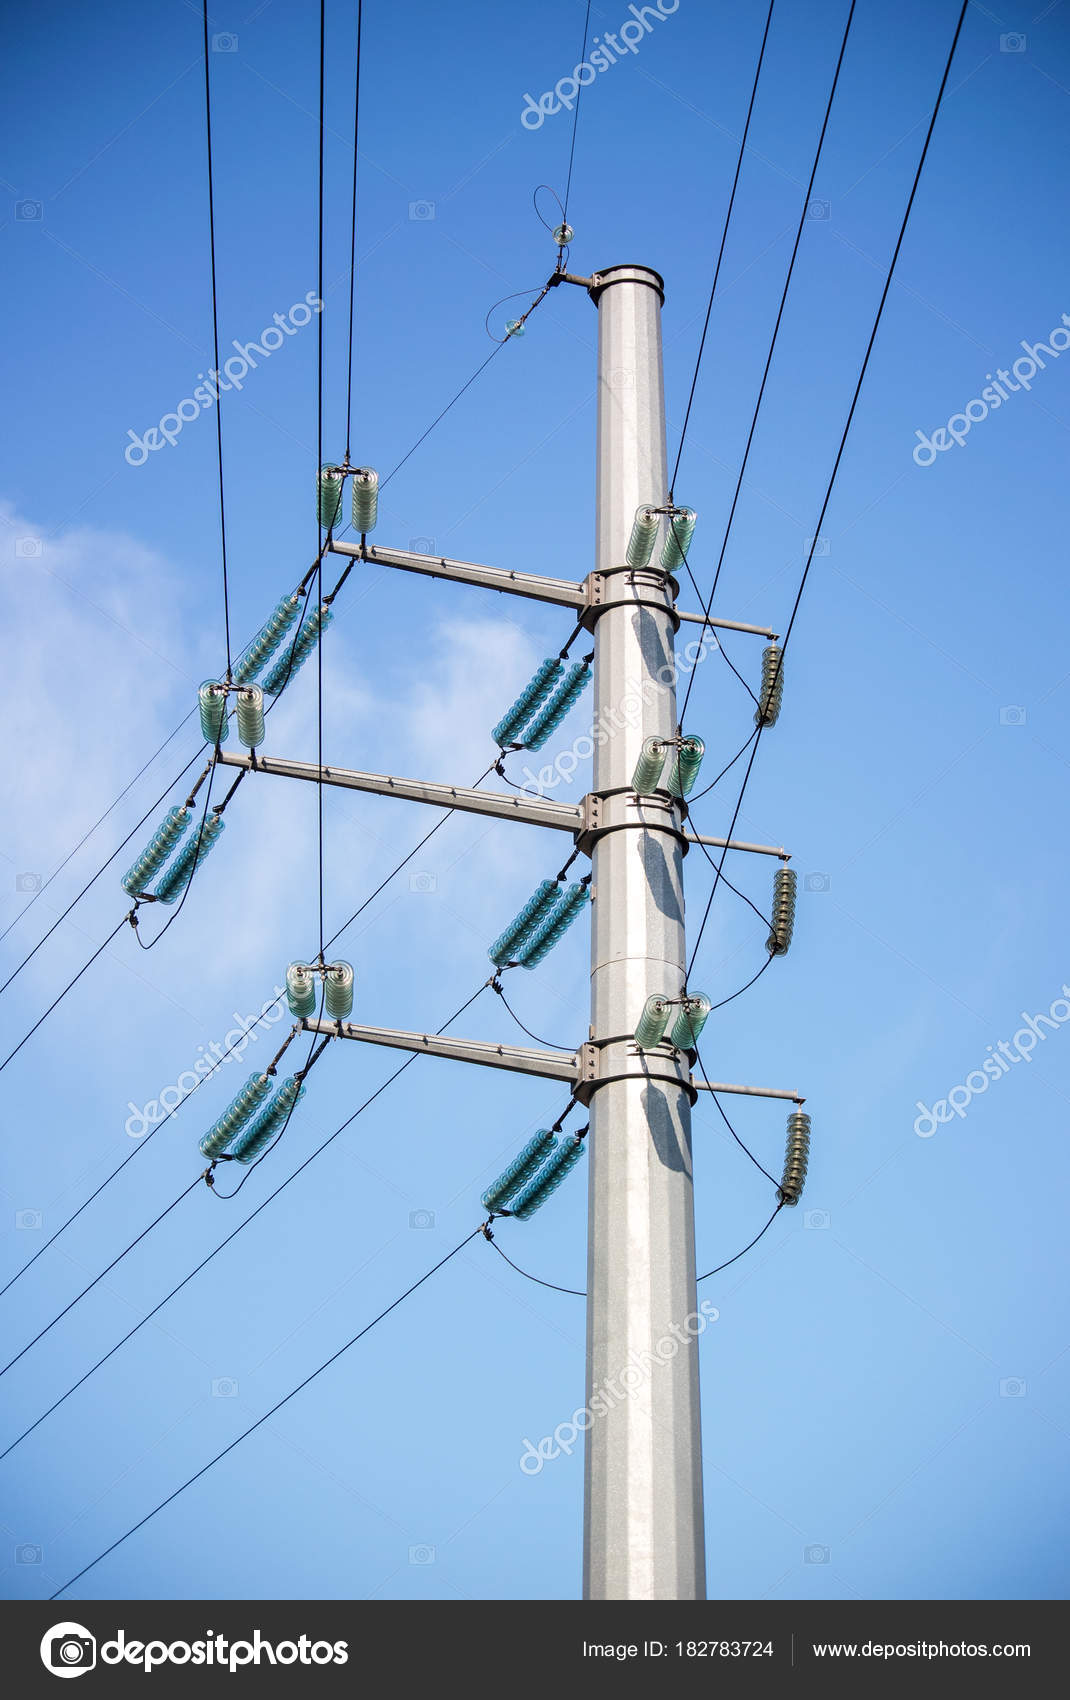 Power Line Post Sky Clouds Background Vertical Photo — Stock Photo ...